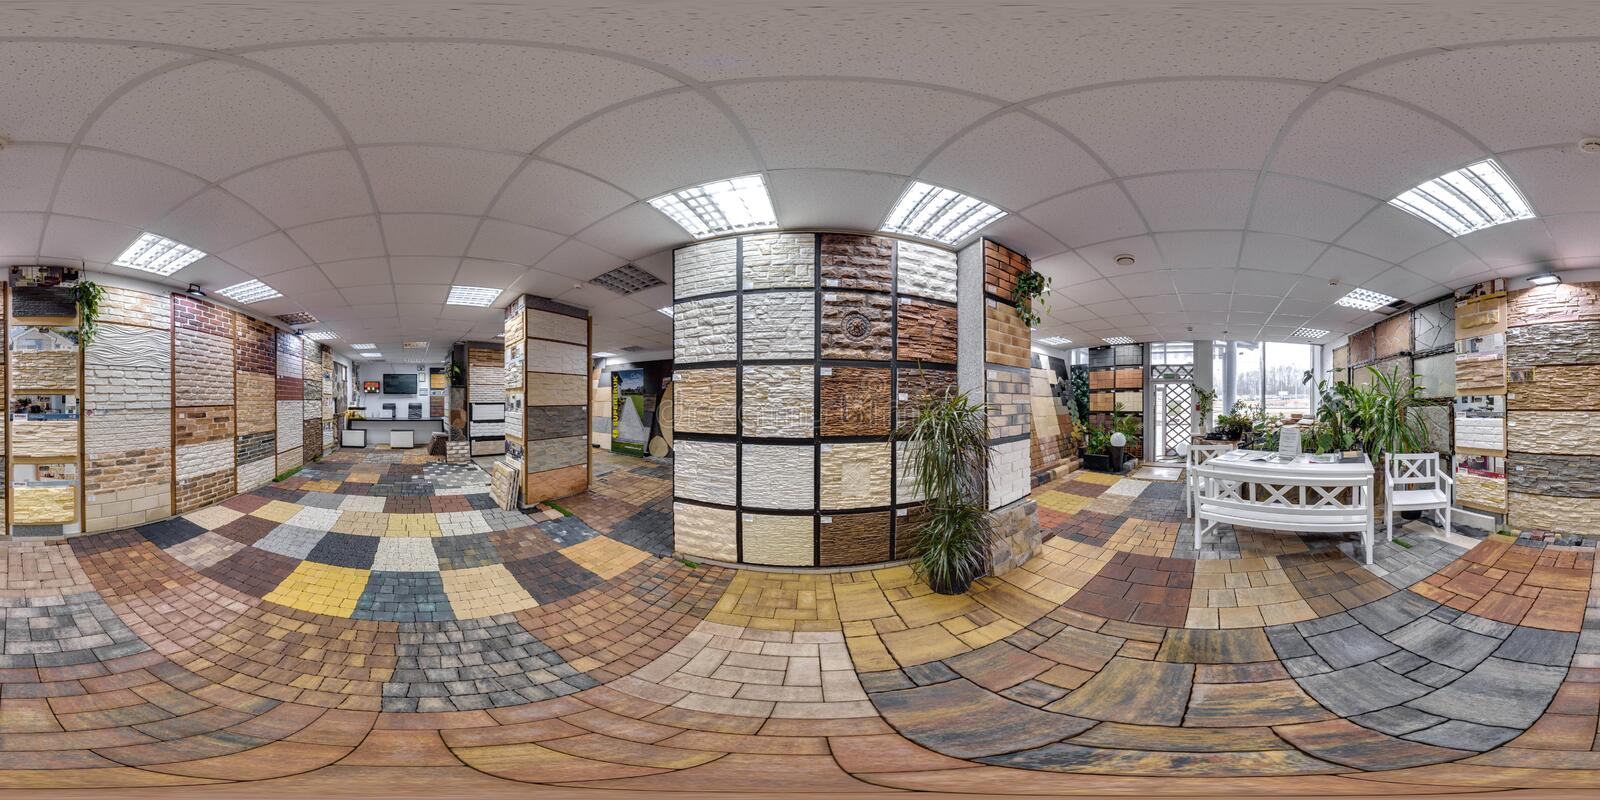 Moscow-2018: 3D spherical panorama with 360 degree viewing angle of the hardware store interior with paving slab and decorative ti. Les. Full equirectangular stock photography